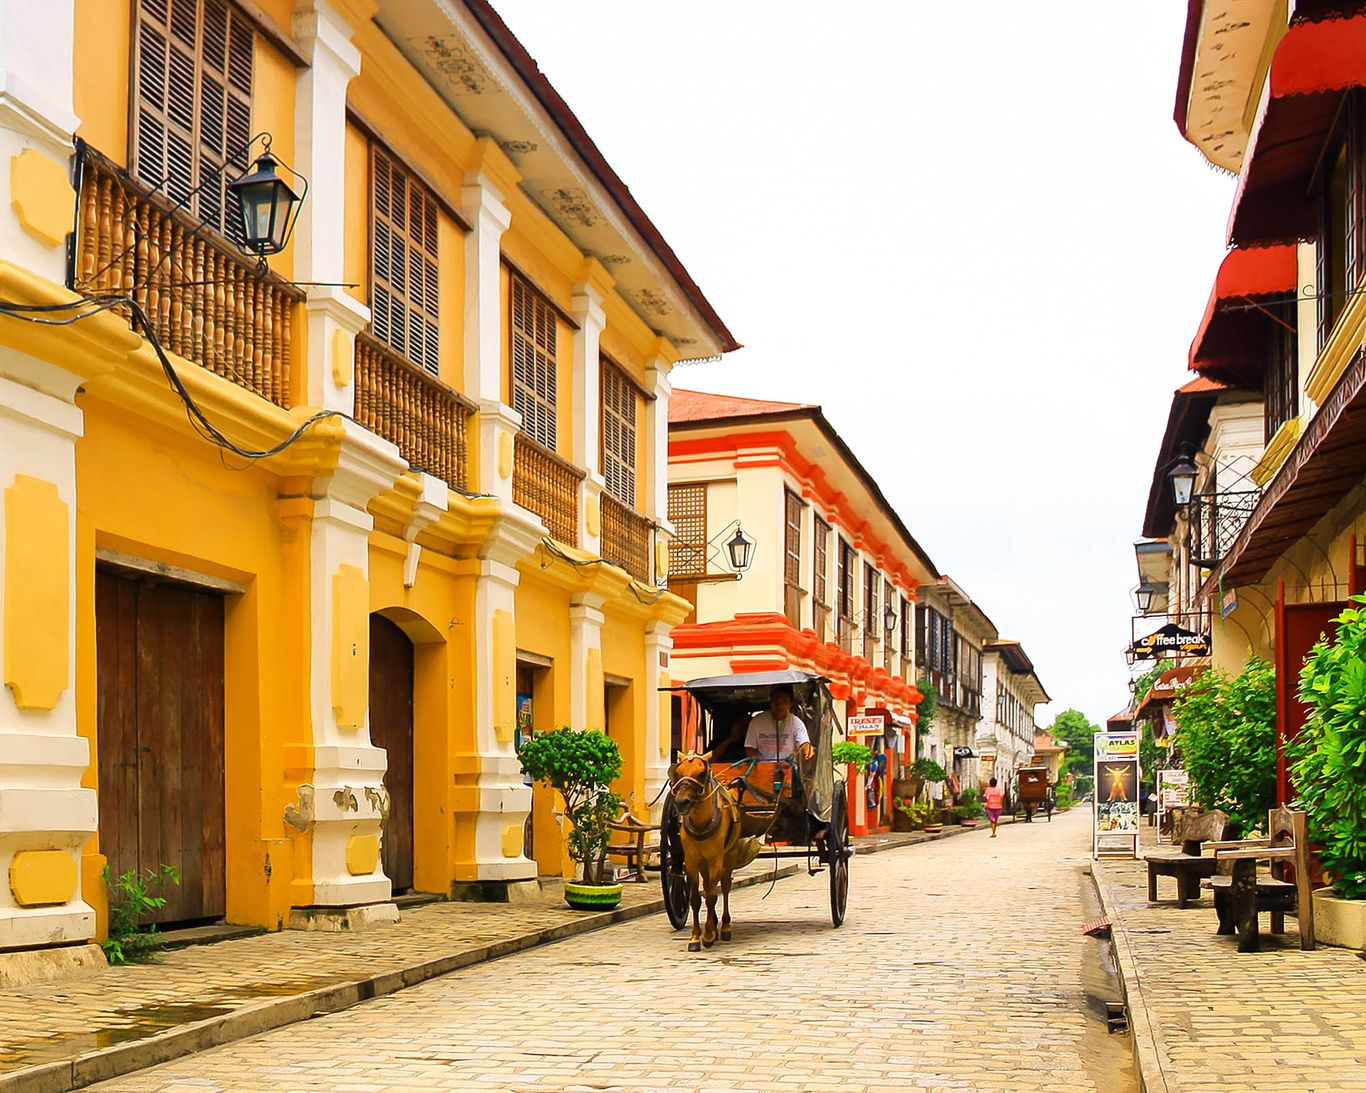 A horse-drawn carriage moves along a cobblestone street, past old two-story houses wrought of stone, brick, and wood at the Historic City of Vigan, one of the UNESCO World Heritage Sites in the Philippines